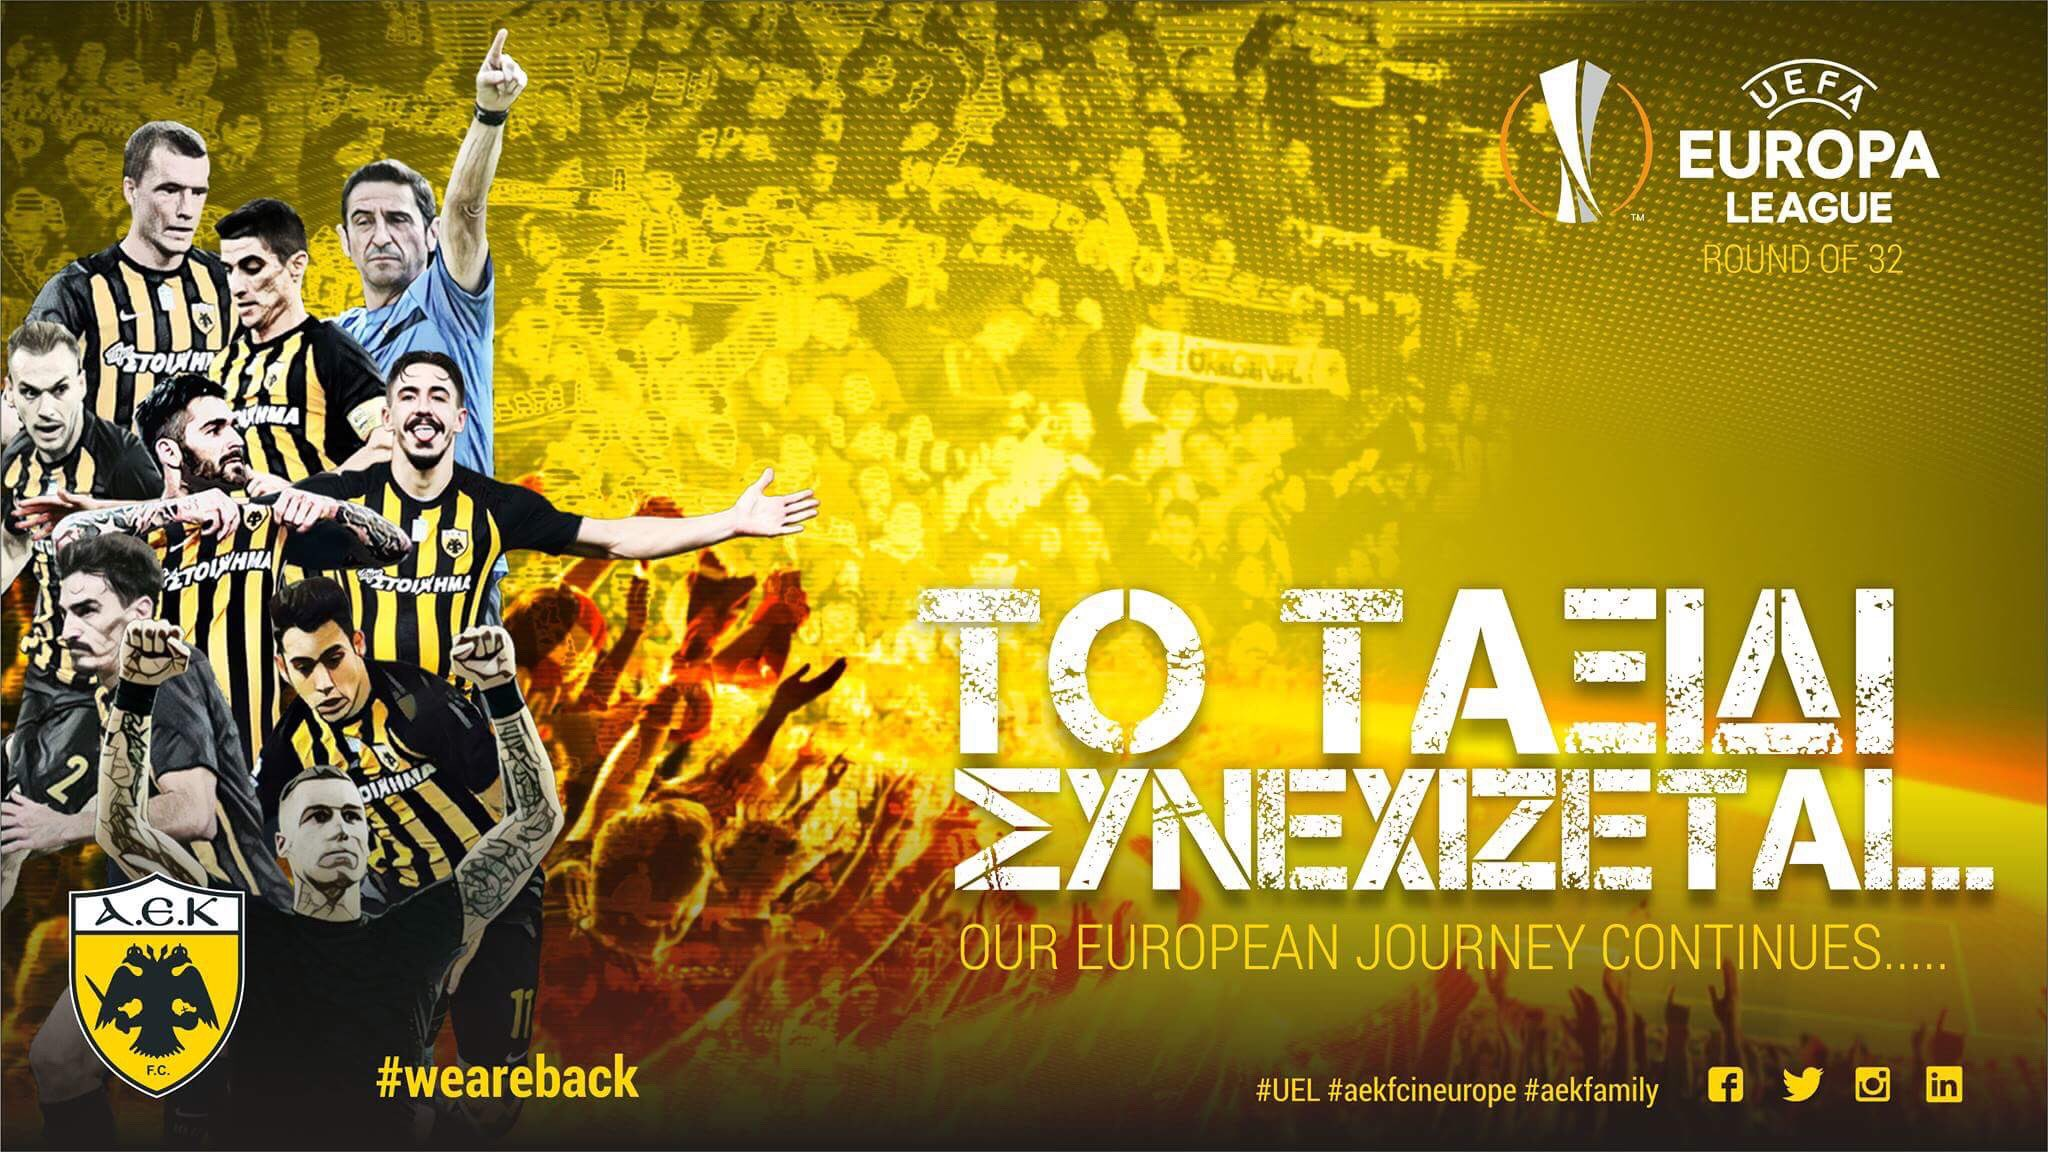 AEK Athens qualifies for the Europa League Round of 32